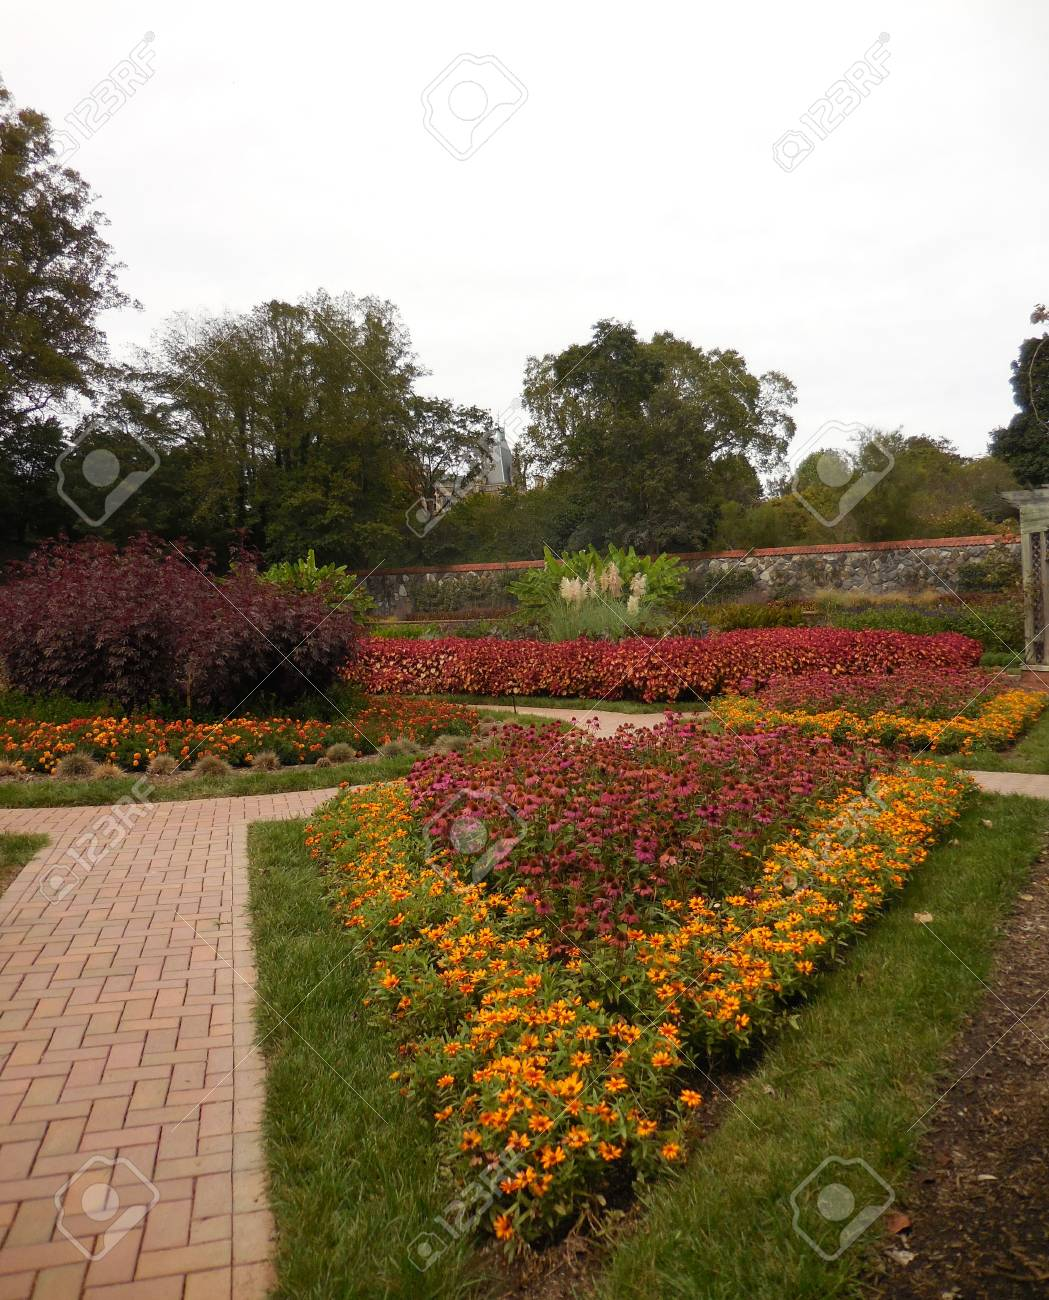 Flower garden Stock Photo - 88603407